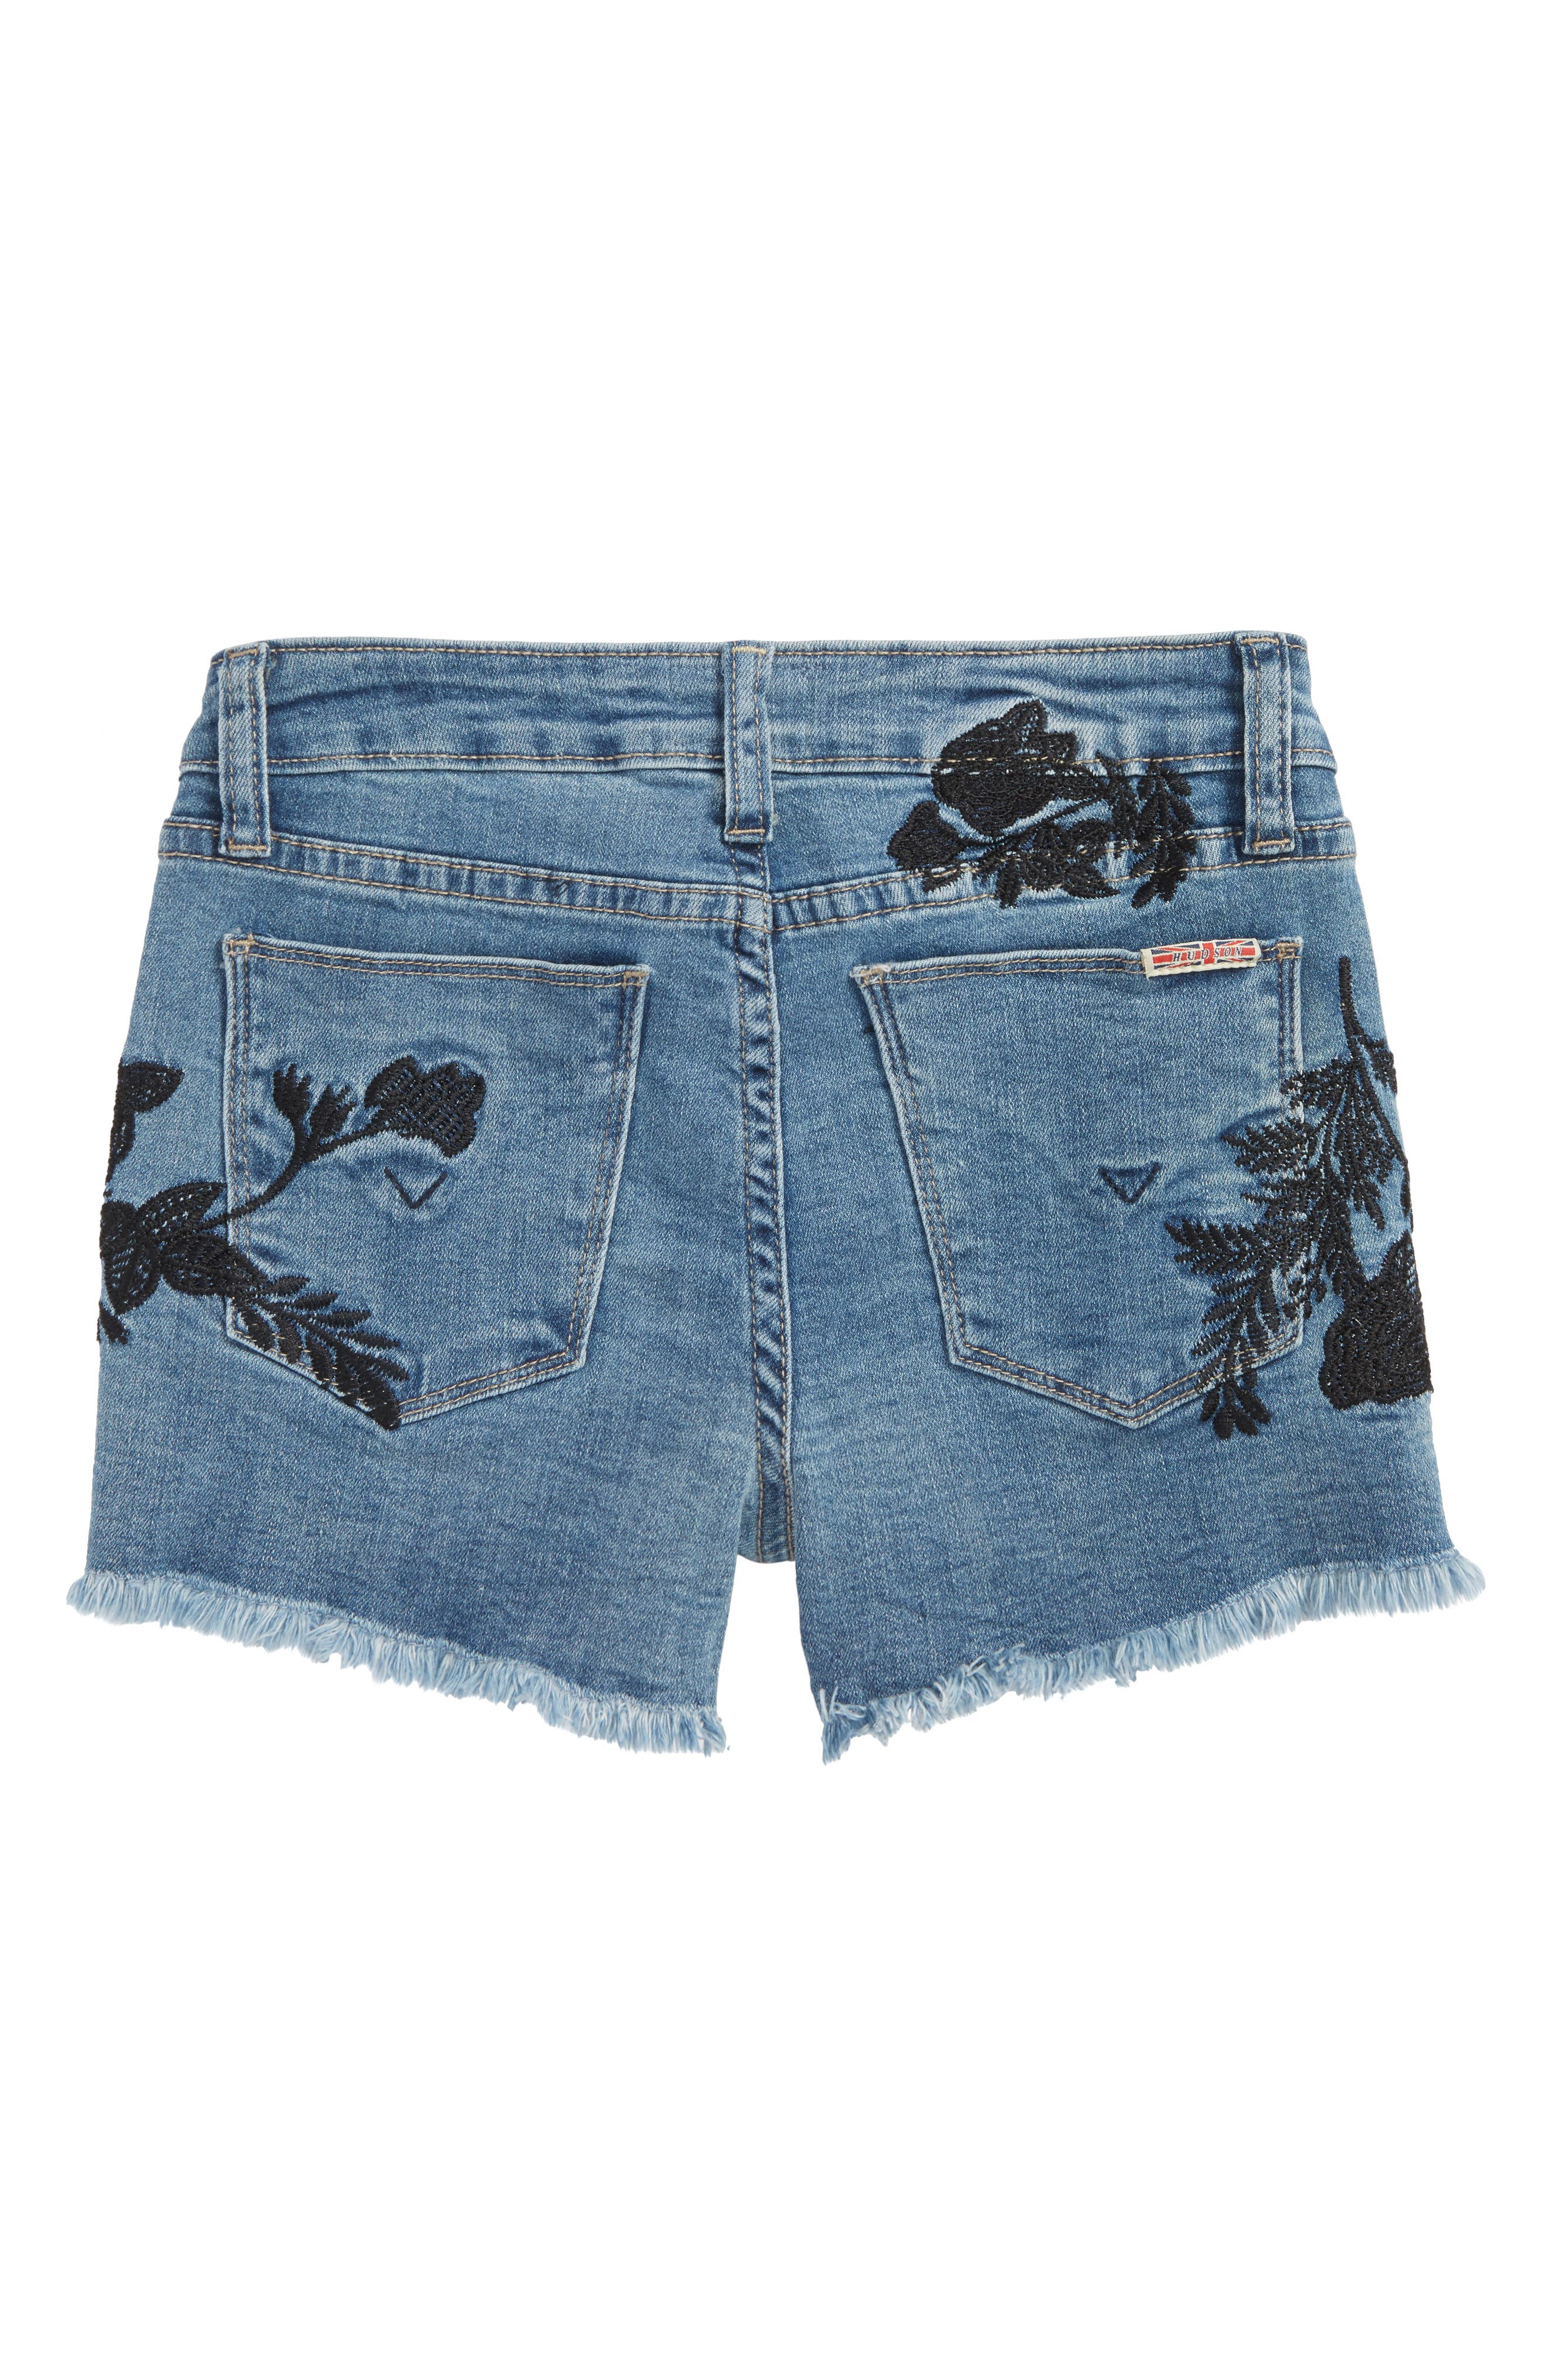 Floral Embroidery Frayed Hem Shorts,                             Alternate thumbnail 2, color,                             Crown Blue